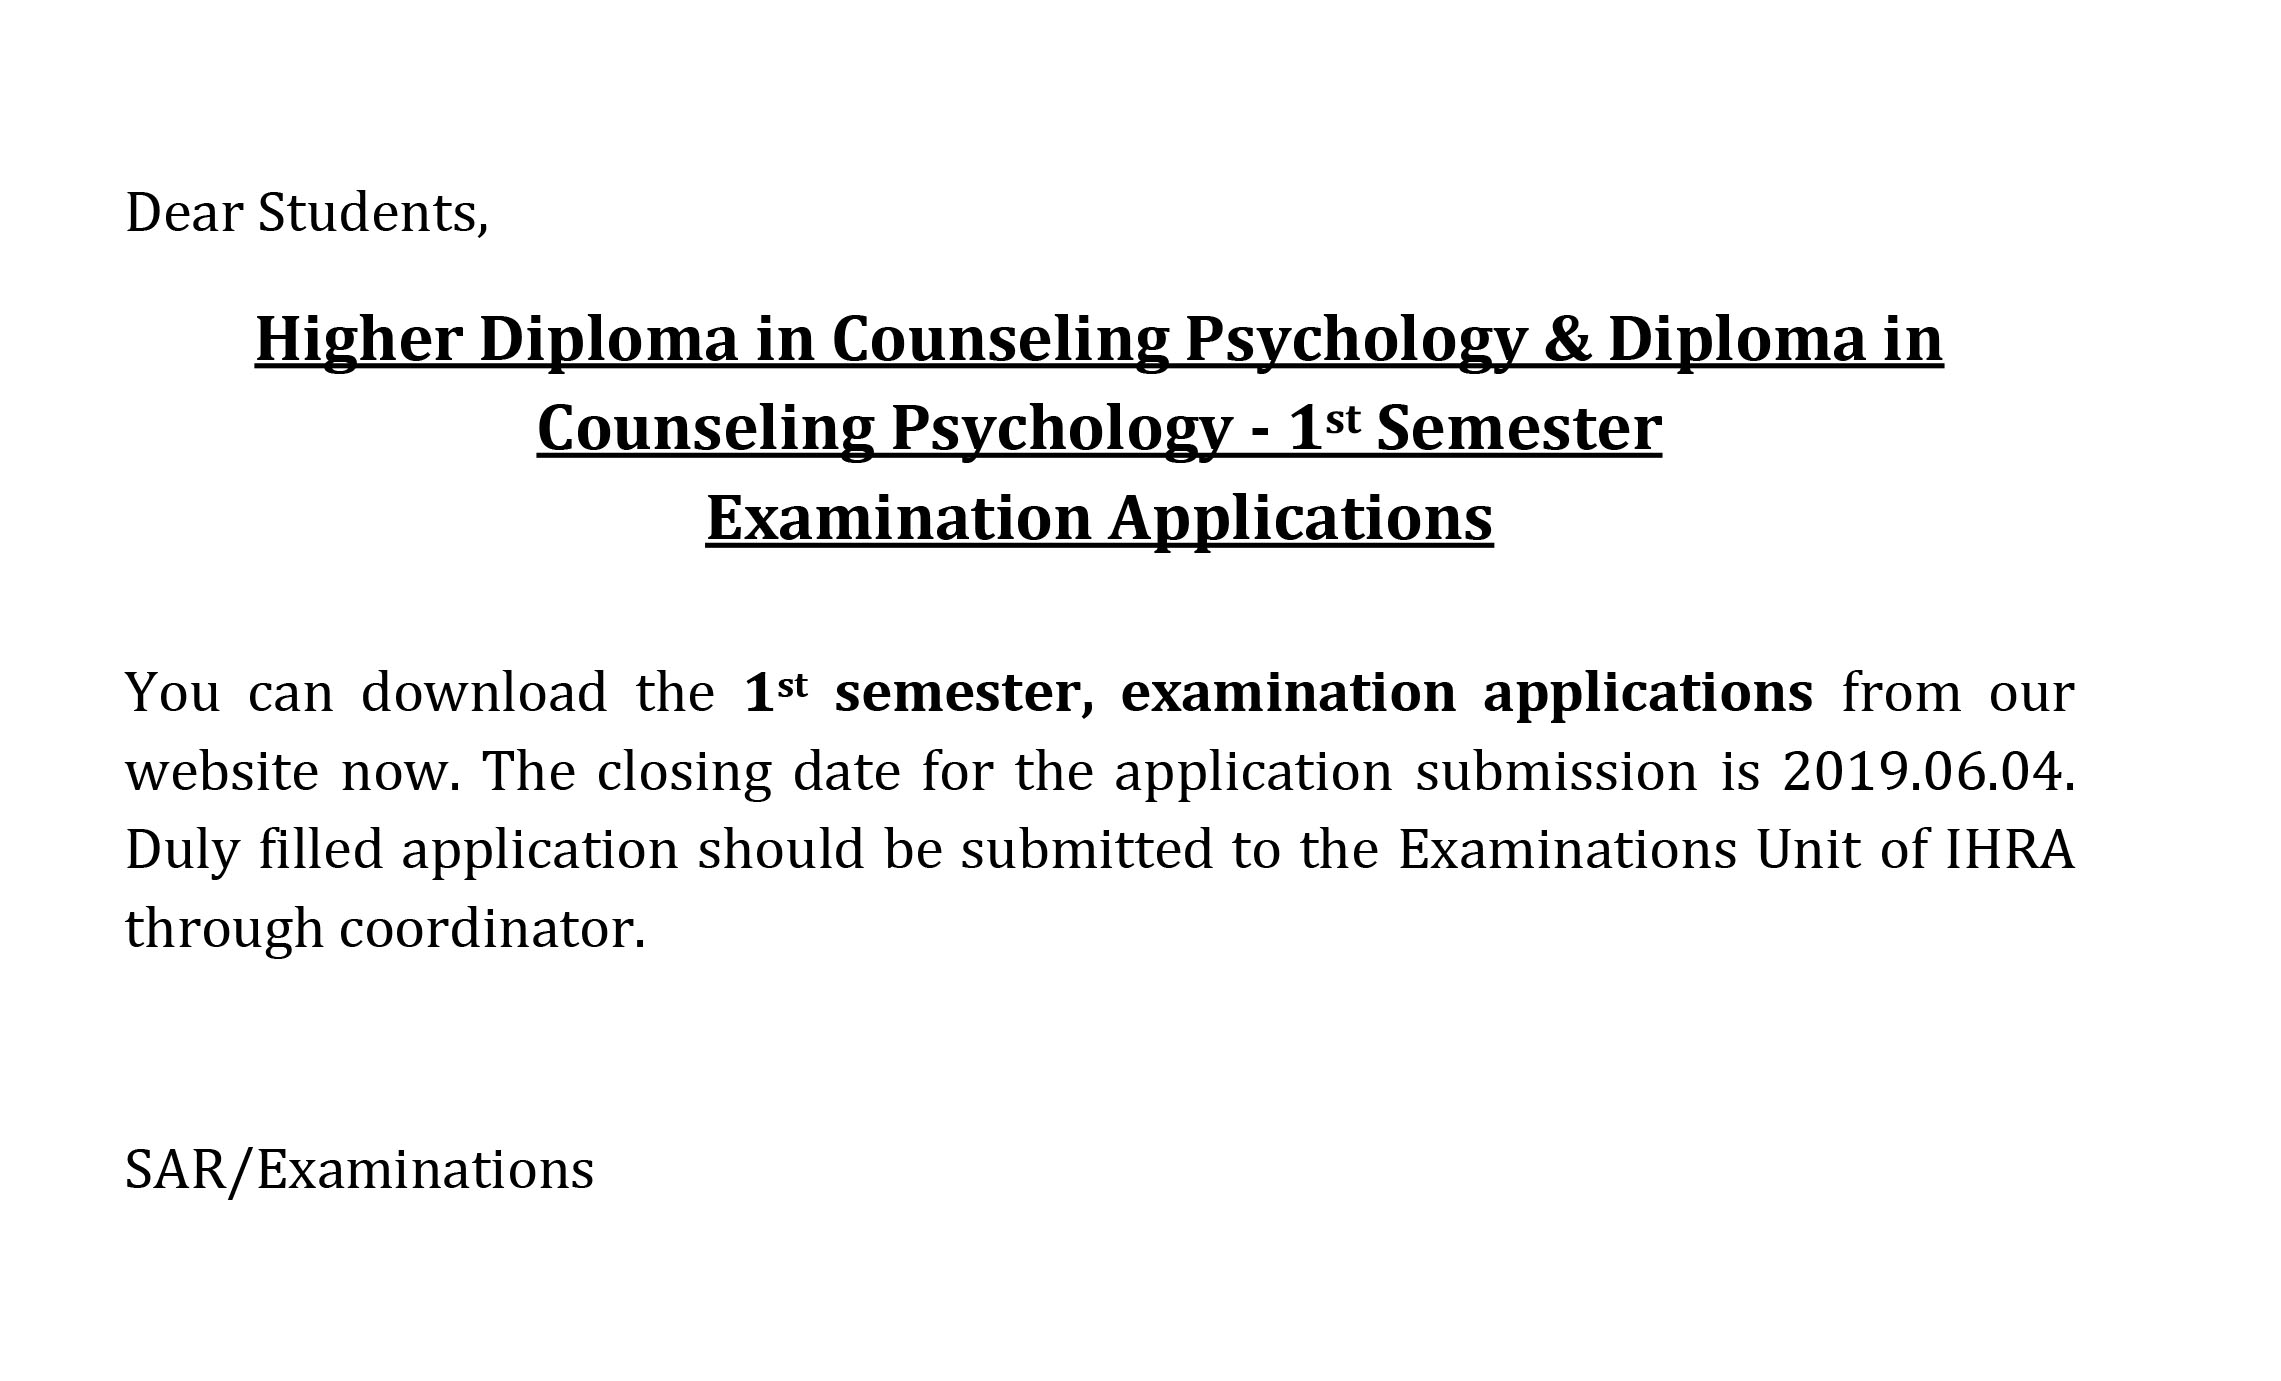 Higher Diploma in Counseling Psychology & Diploma in Counseling Psychology – 1st Semester   Examination Applications